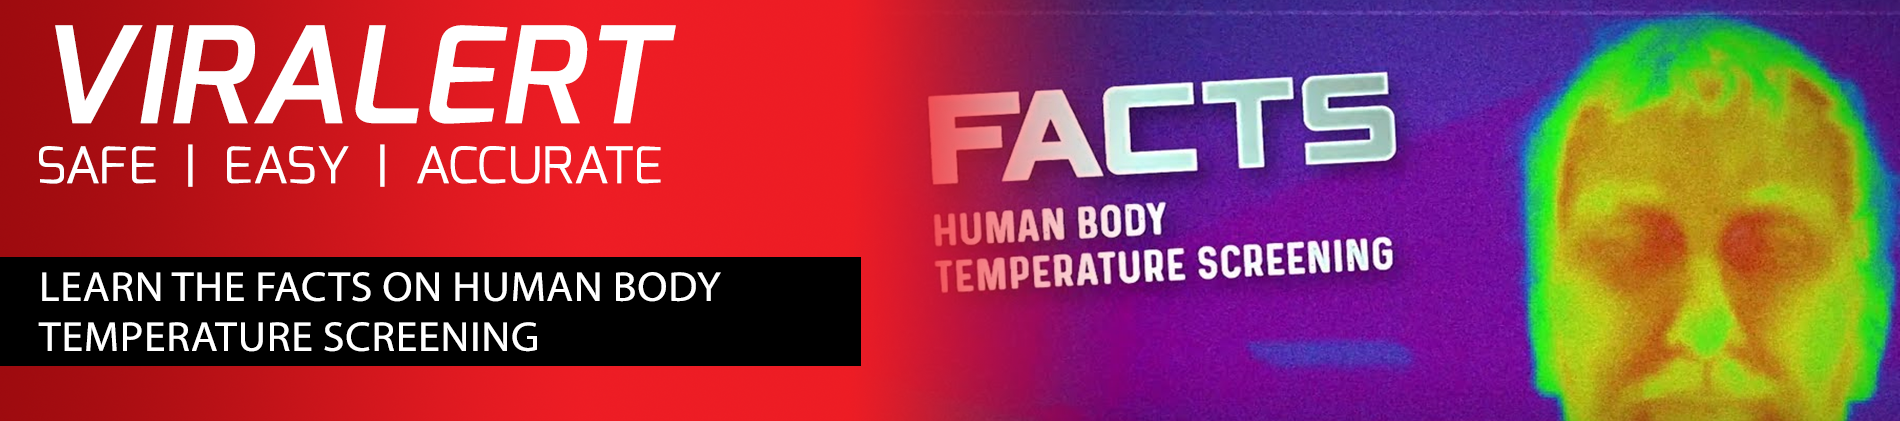 LEARN THE FACTS ON HUMAN BODY TEMPERATURE SCREENING